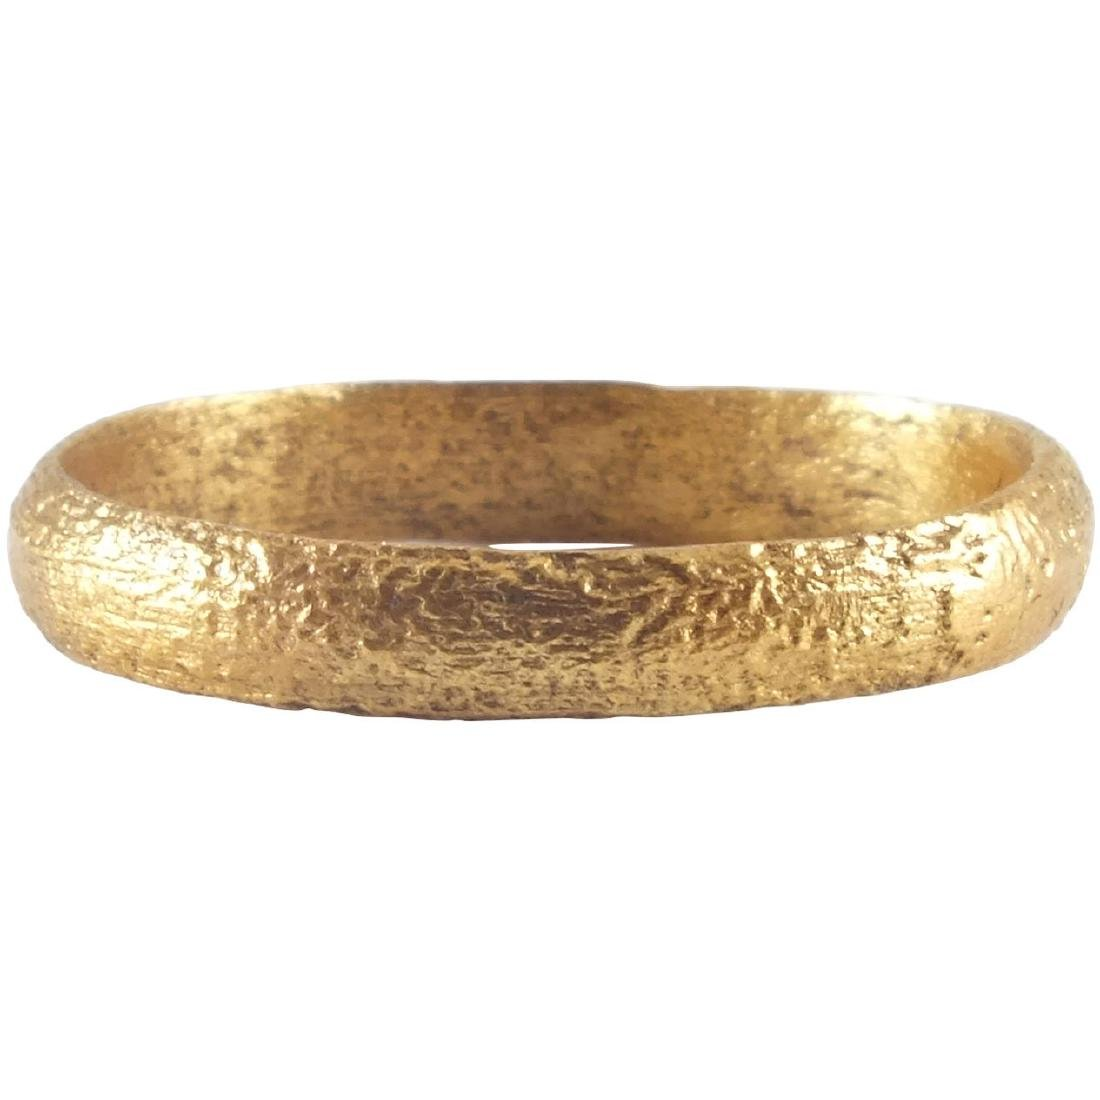 ANCIENT VIKING WEDDING RING C.850-1050 AD